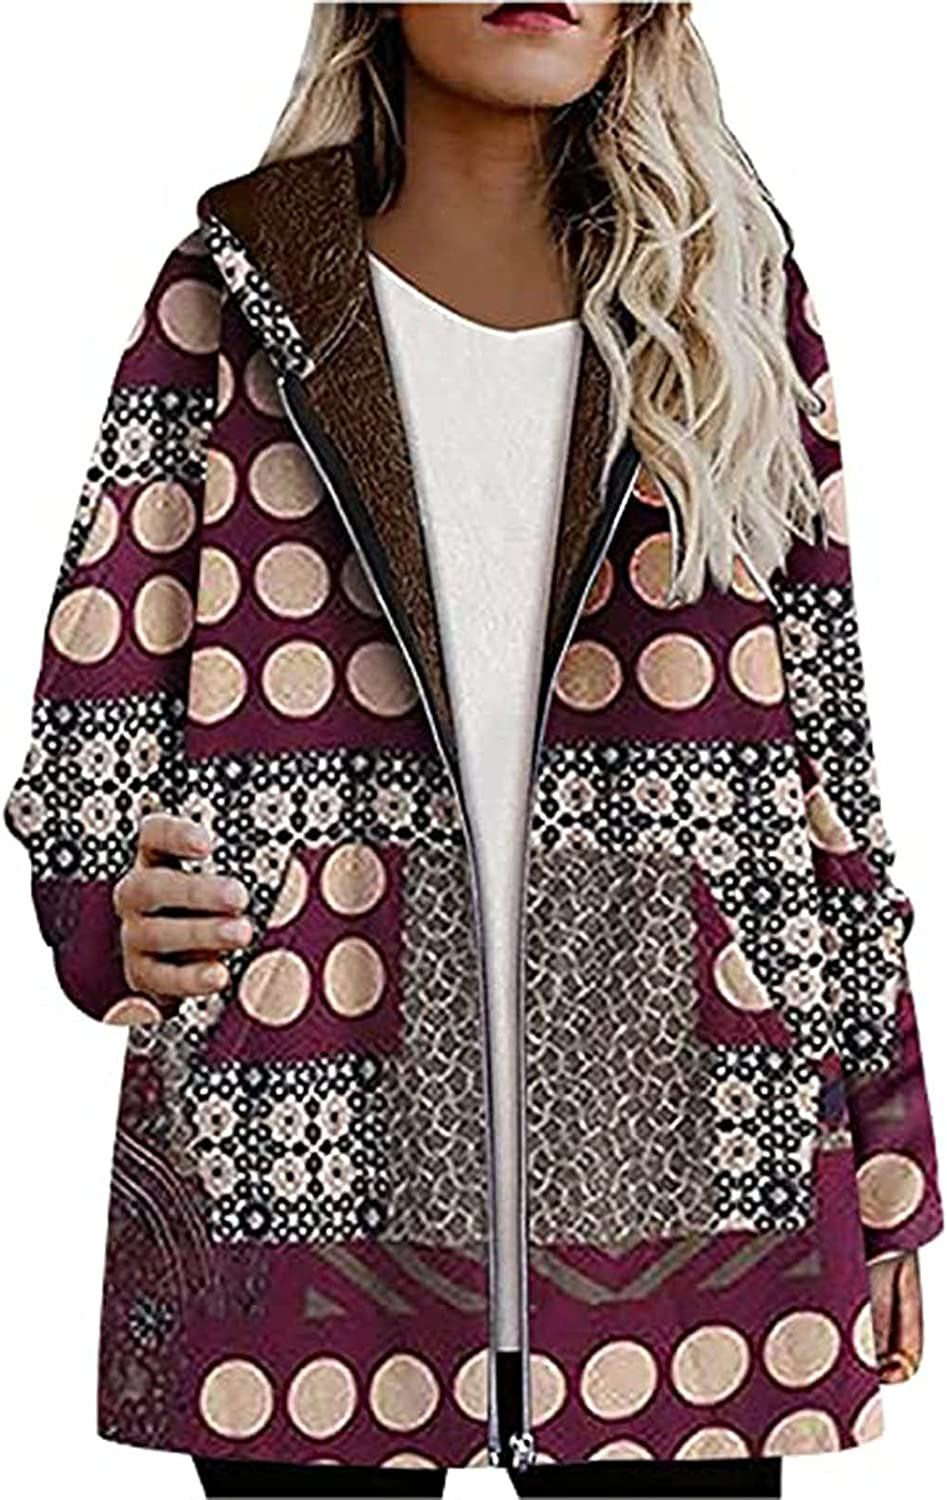 Womens Vintage Fleece Lined Coat Floral Hooded Cardigans with Pockets Oversize Zip Up Jacket Thick Outwear Hoodies